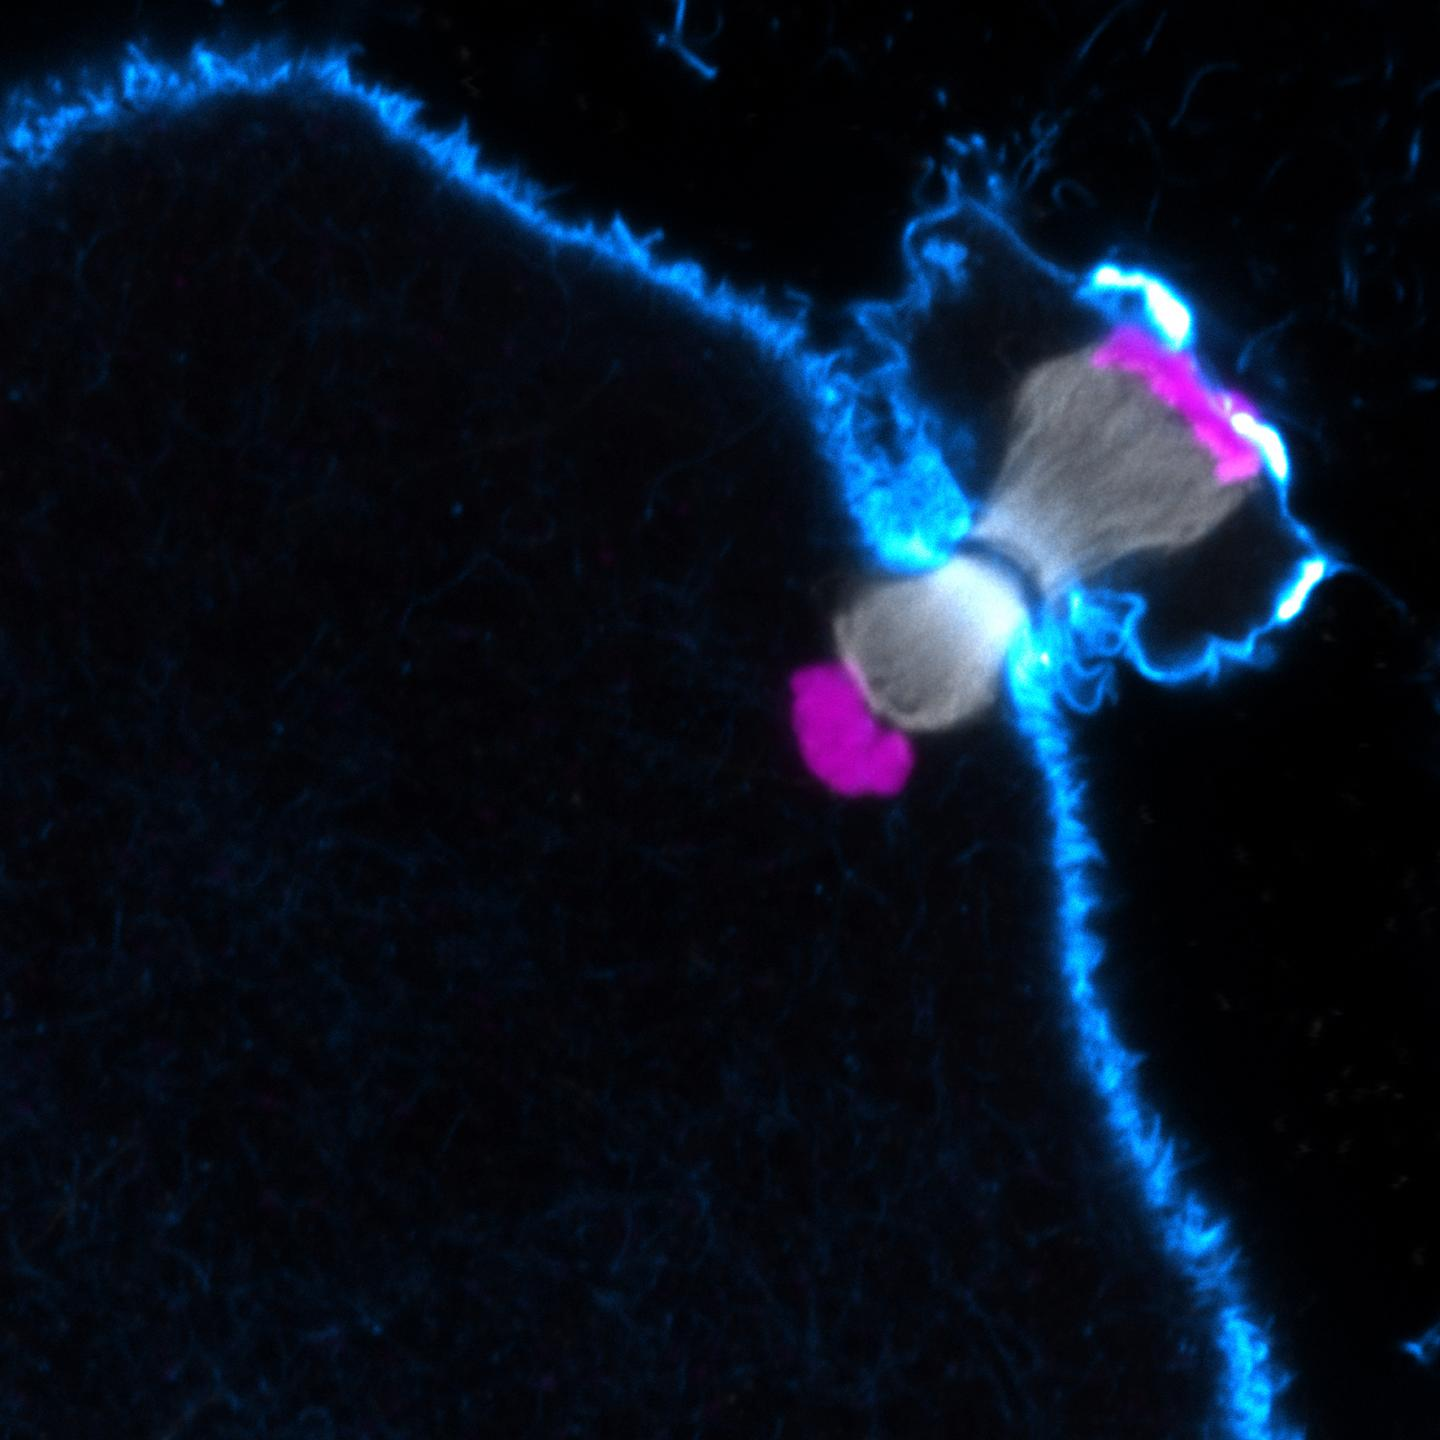 Polar body extrusion in a human oocyte (Actin in cyan; Chromosomes in magenta; Microtubules in grey). This material relates to a paper that appeared in the June 5, 2015 issue of Science, published by AAAS. The paper, by Zuzana Holubcova at the Medical Research Council in Cambridge, UK, and colleagues was titled, 'Error-prone chromosome-mediated spindle assembly favors chromosome segregation defects in human oocytes.'